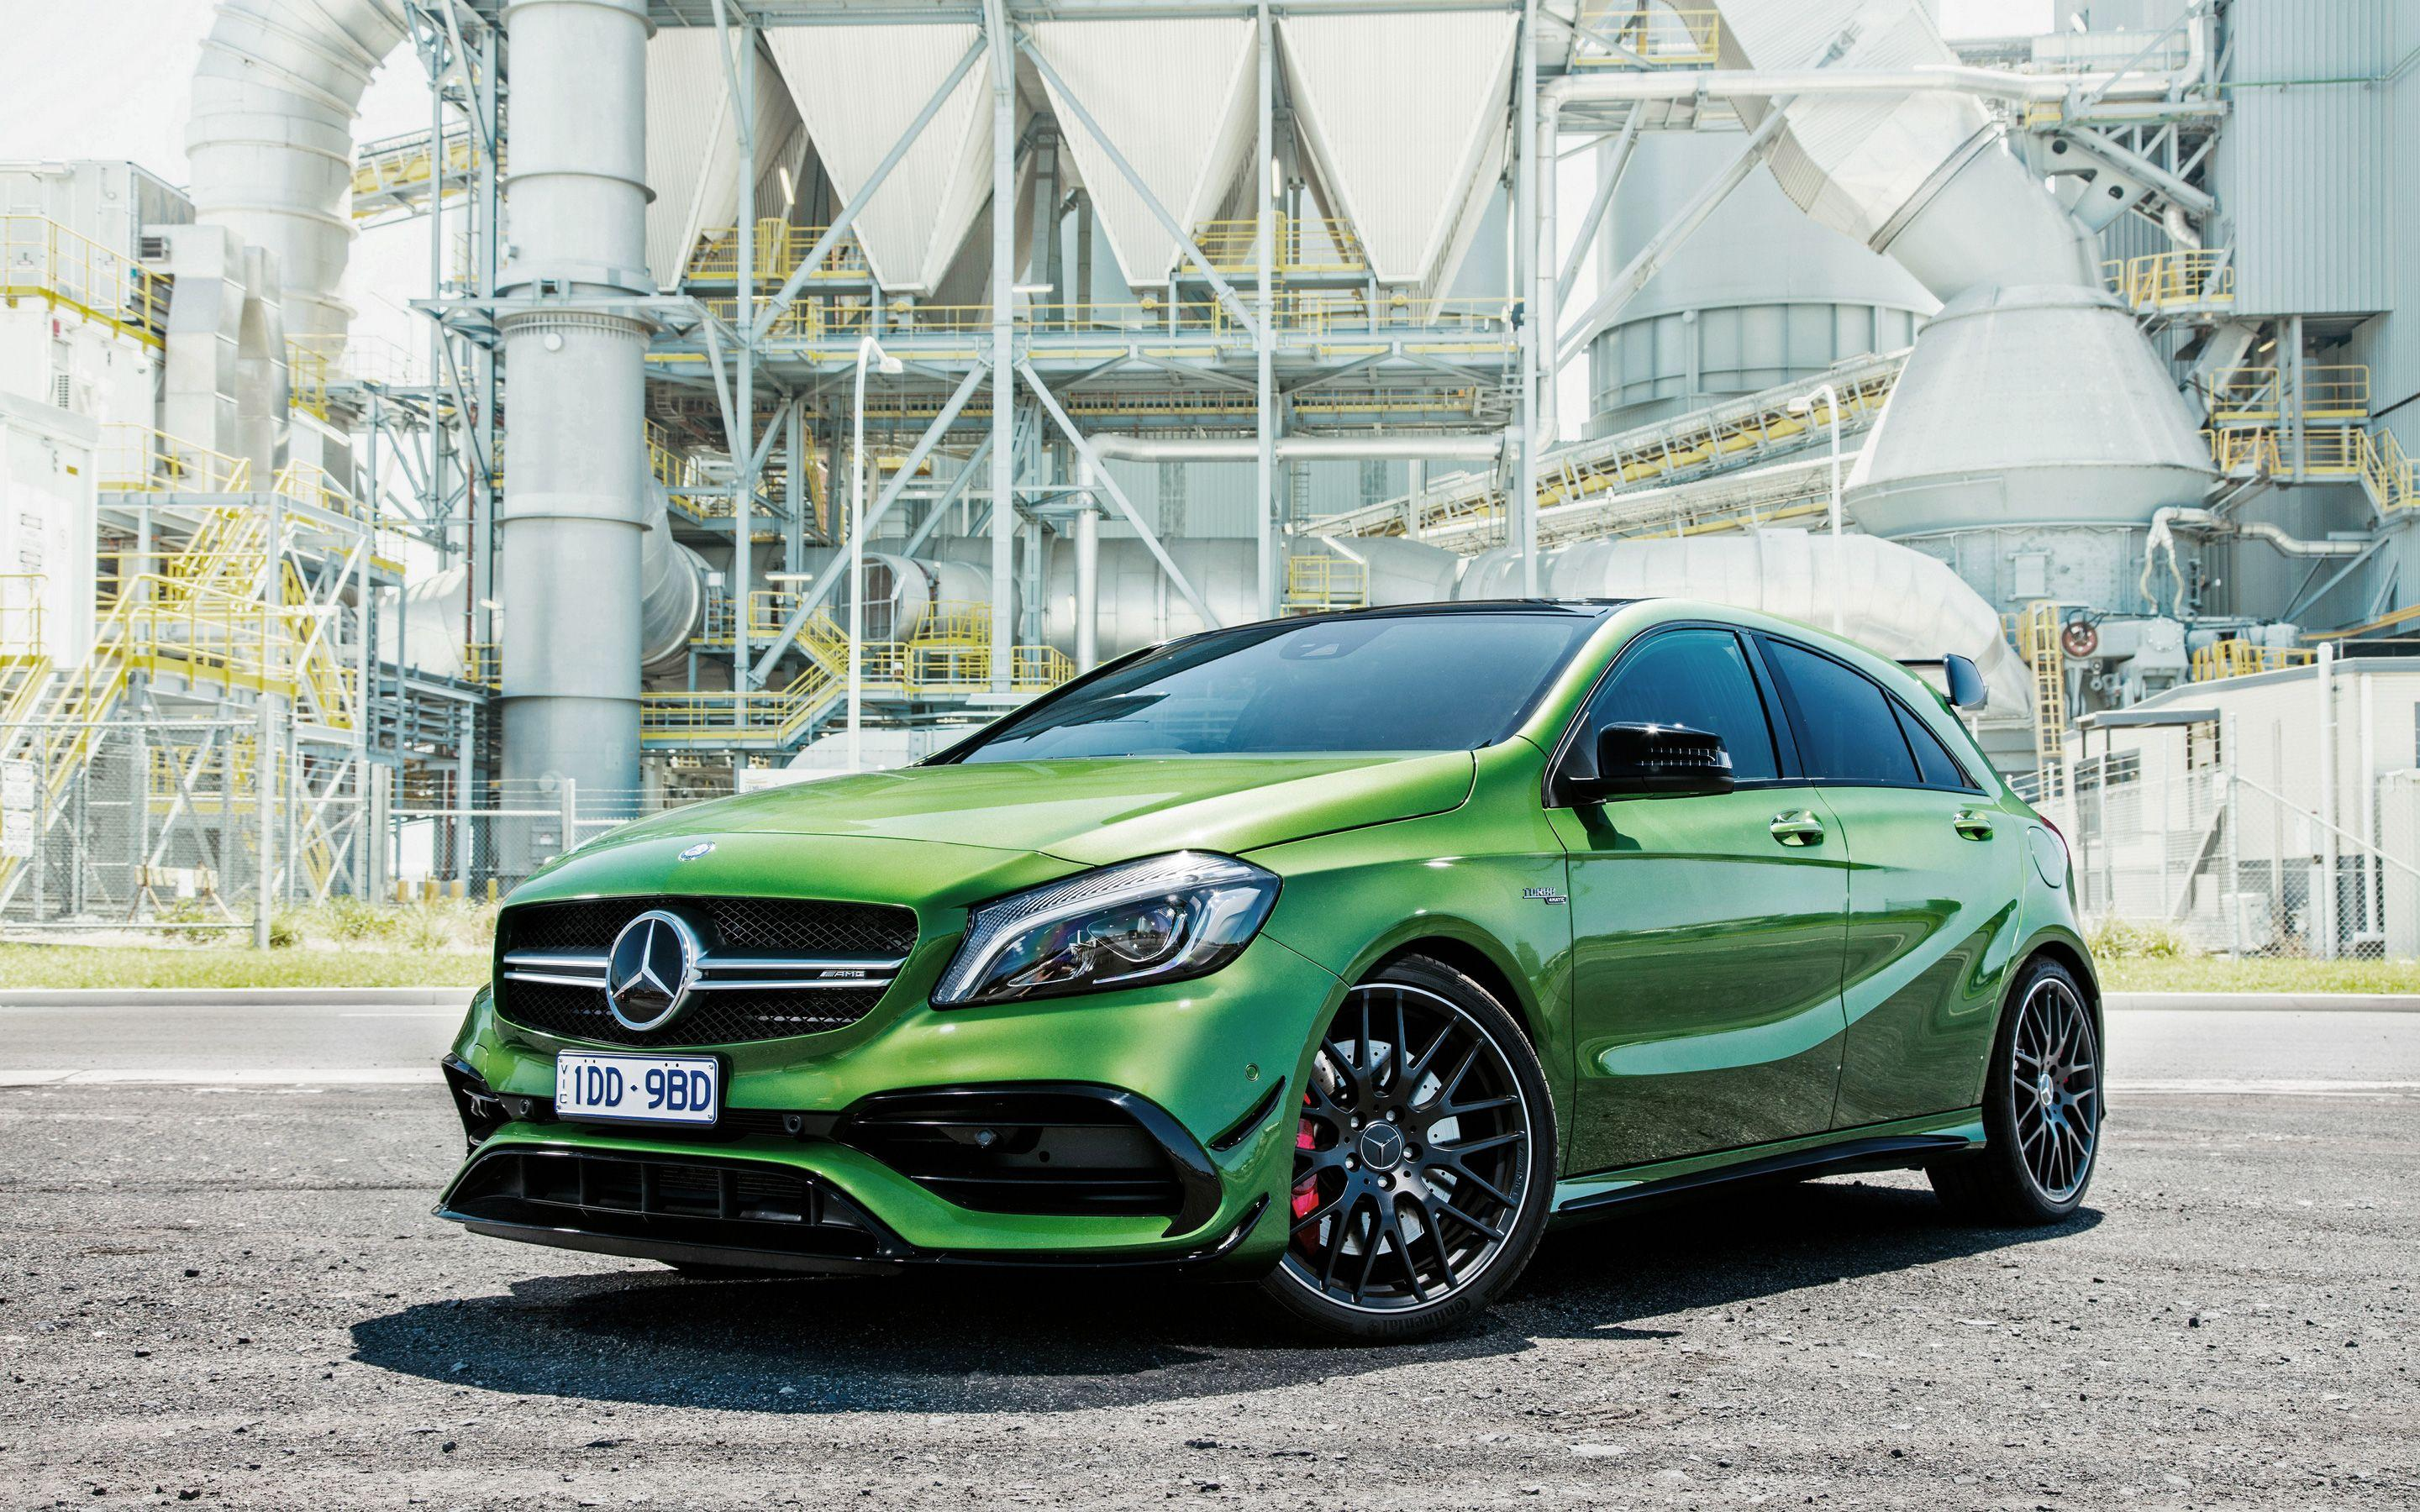 2016 Mercedes Benz A Class A45 AMG 4Matic Wallpapers